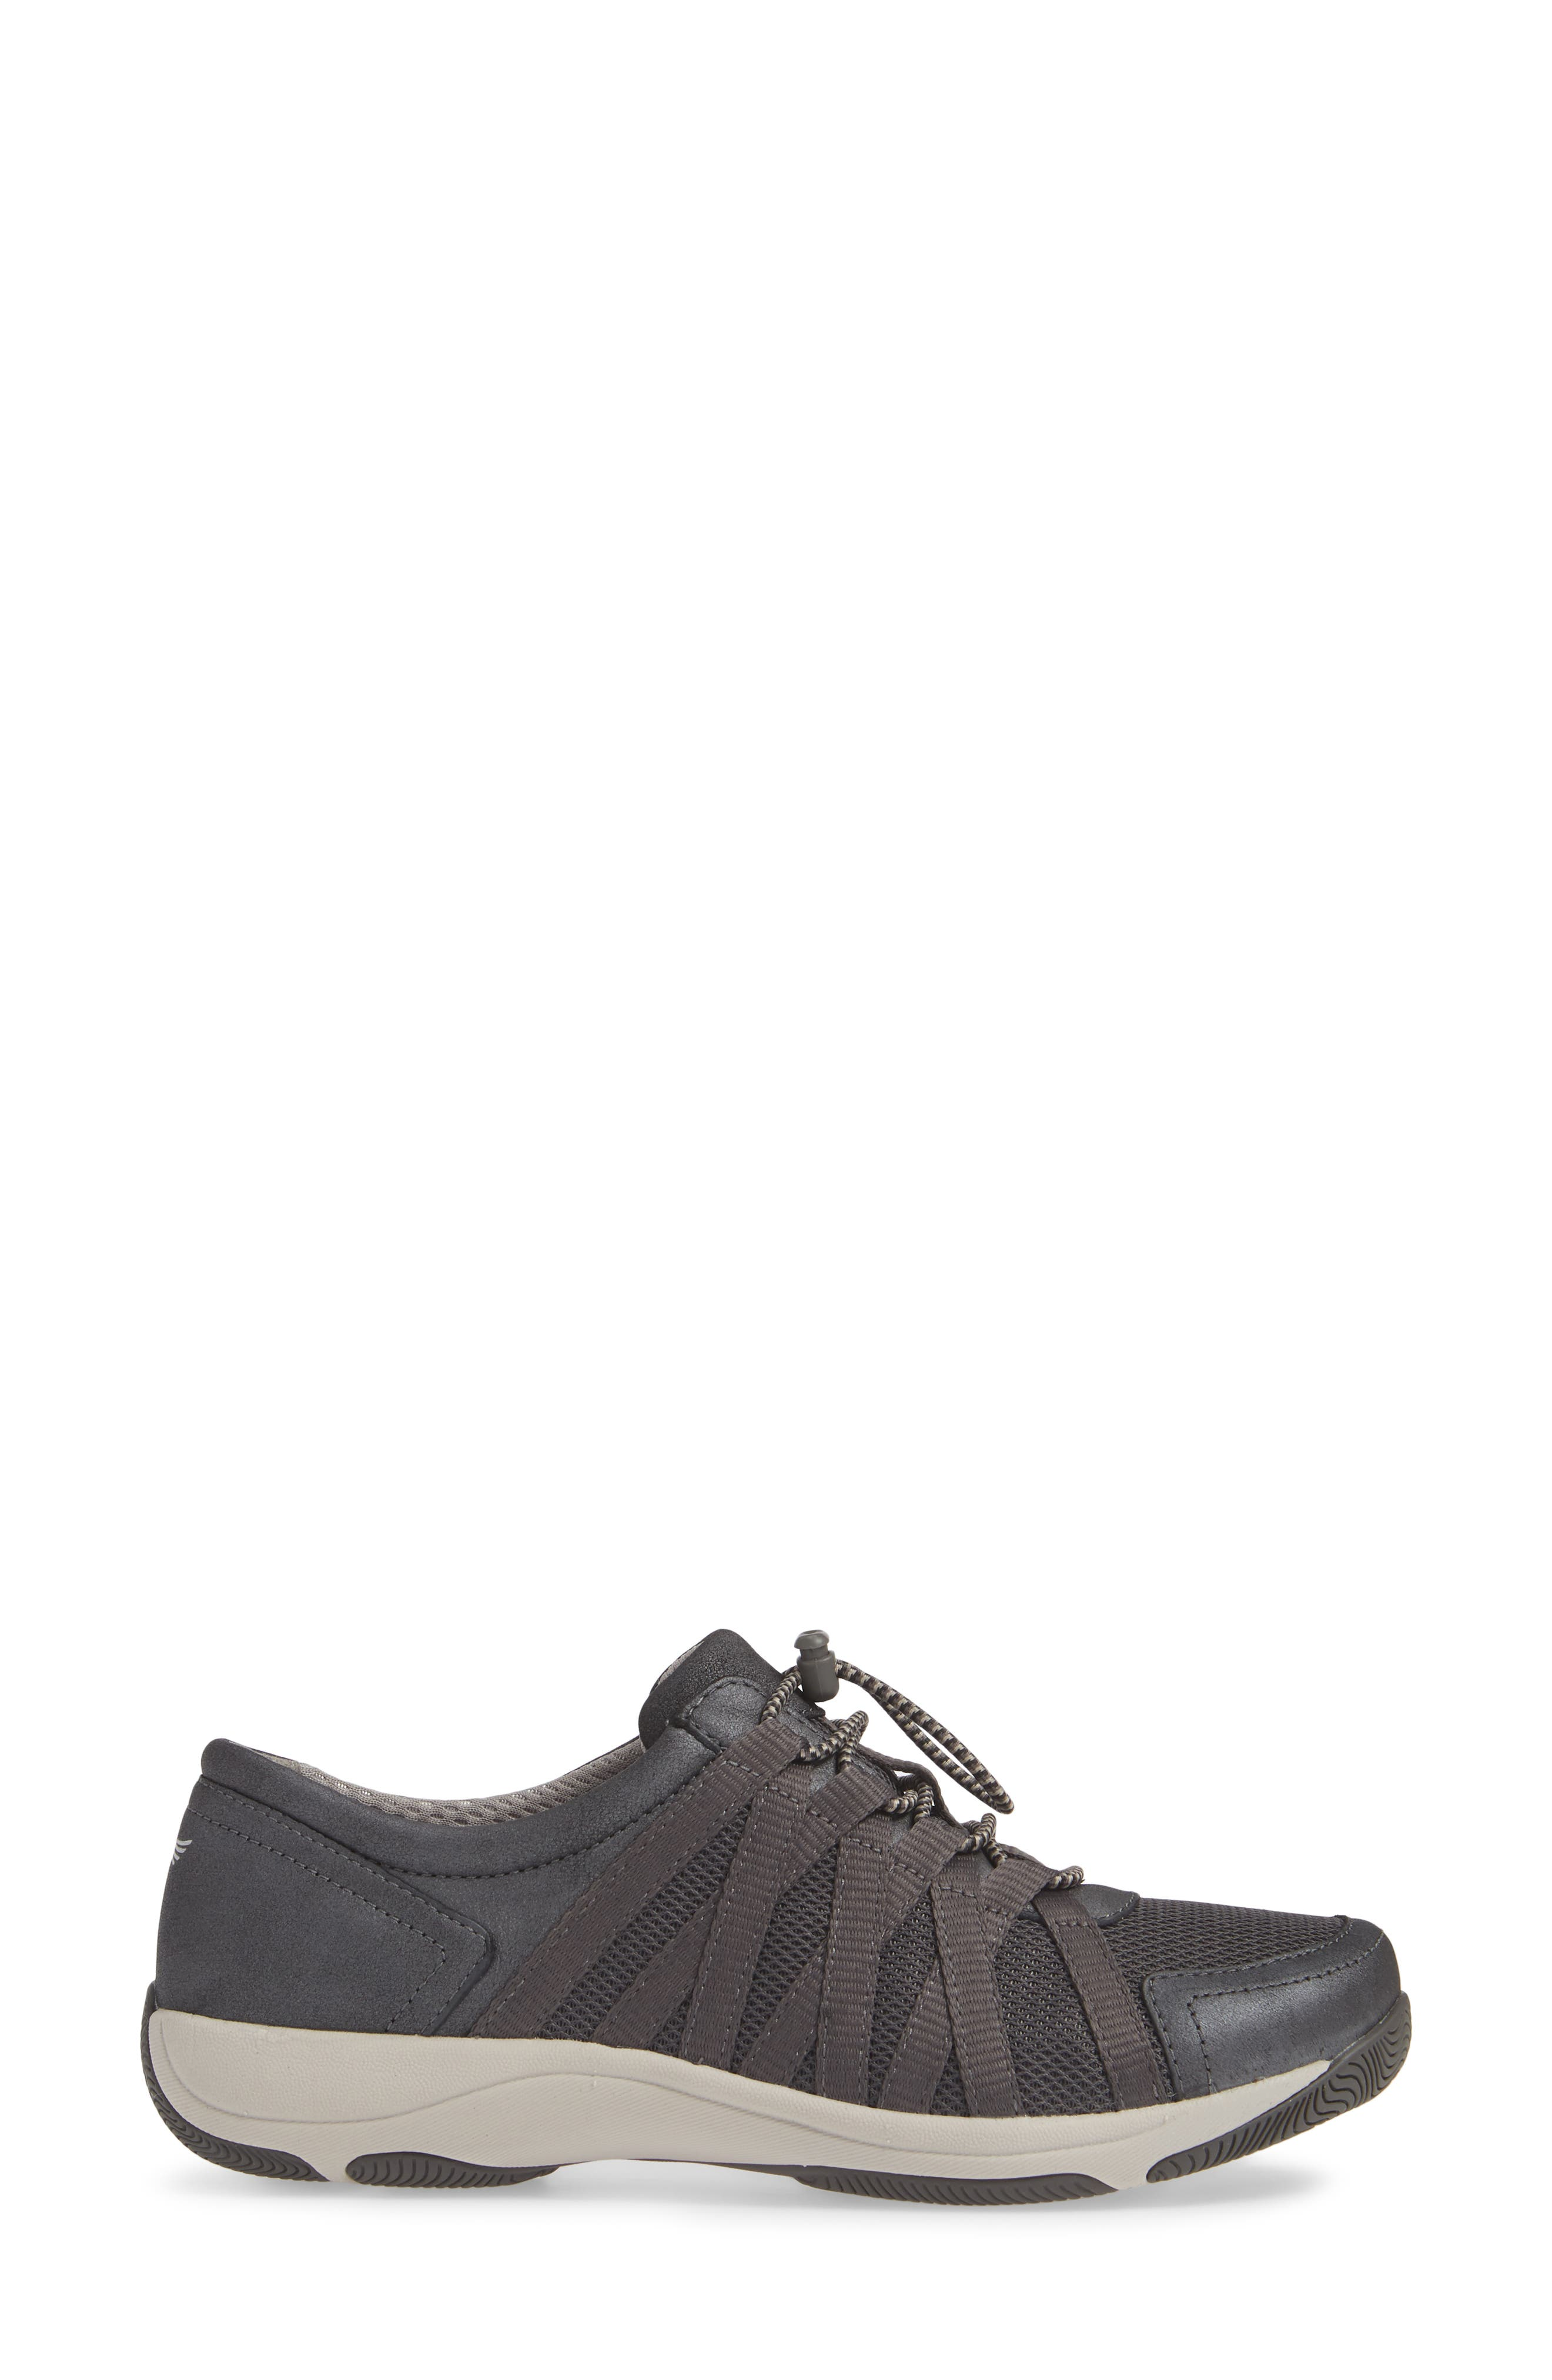 Halifax Collection Honor Sneaker,                             Alternate thumbnail 3, color,                             CHARCOAL/ CHARCOAL SUEDE